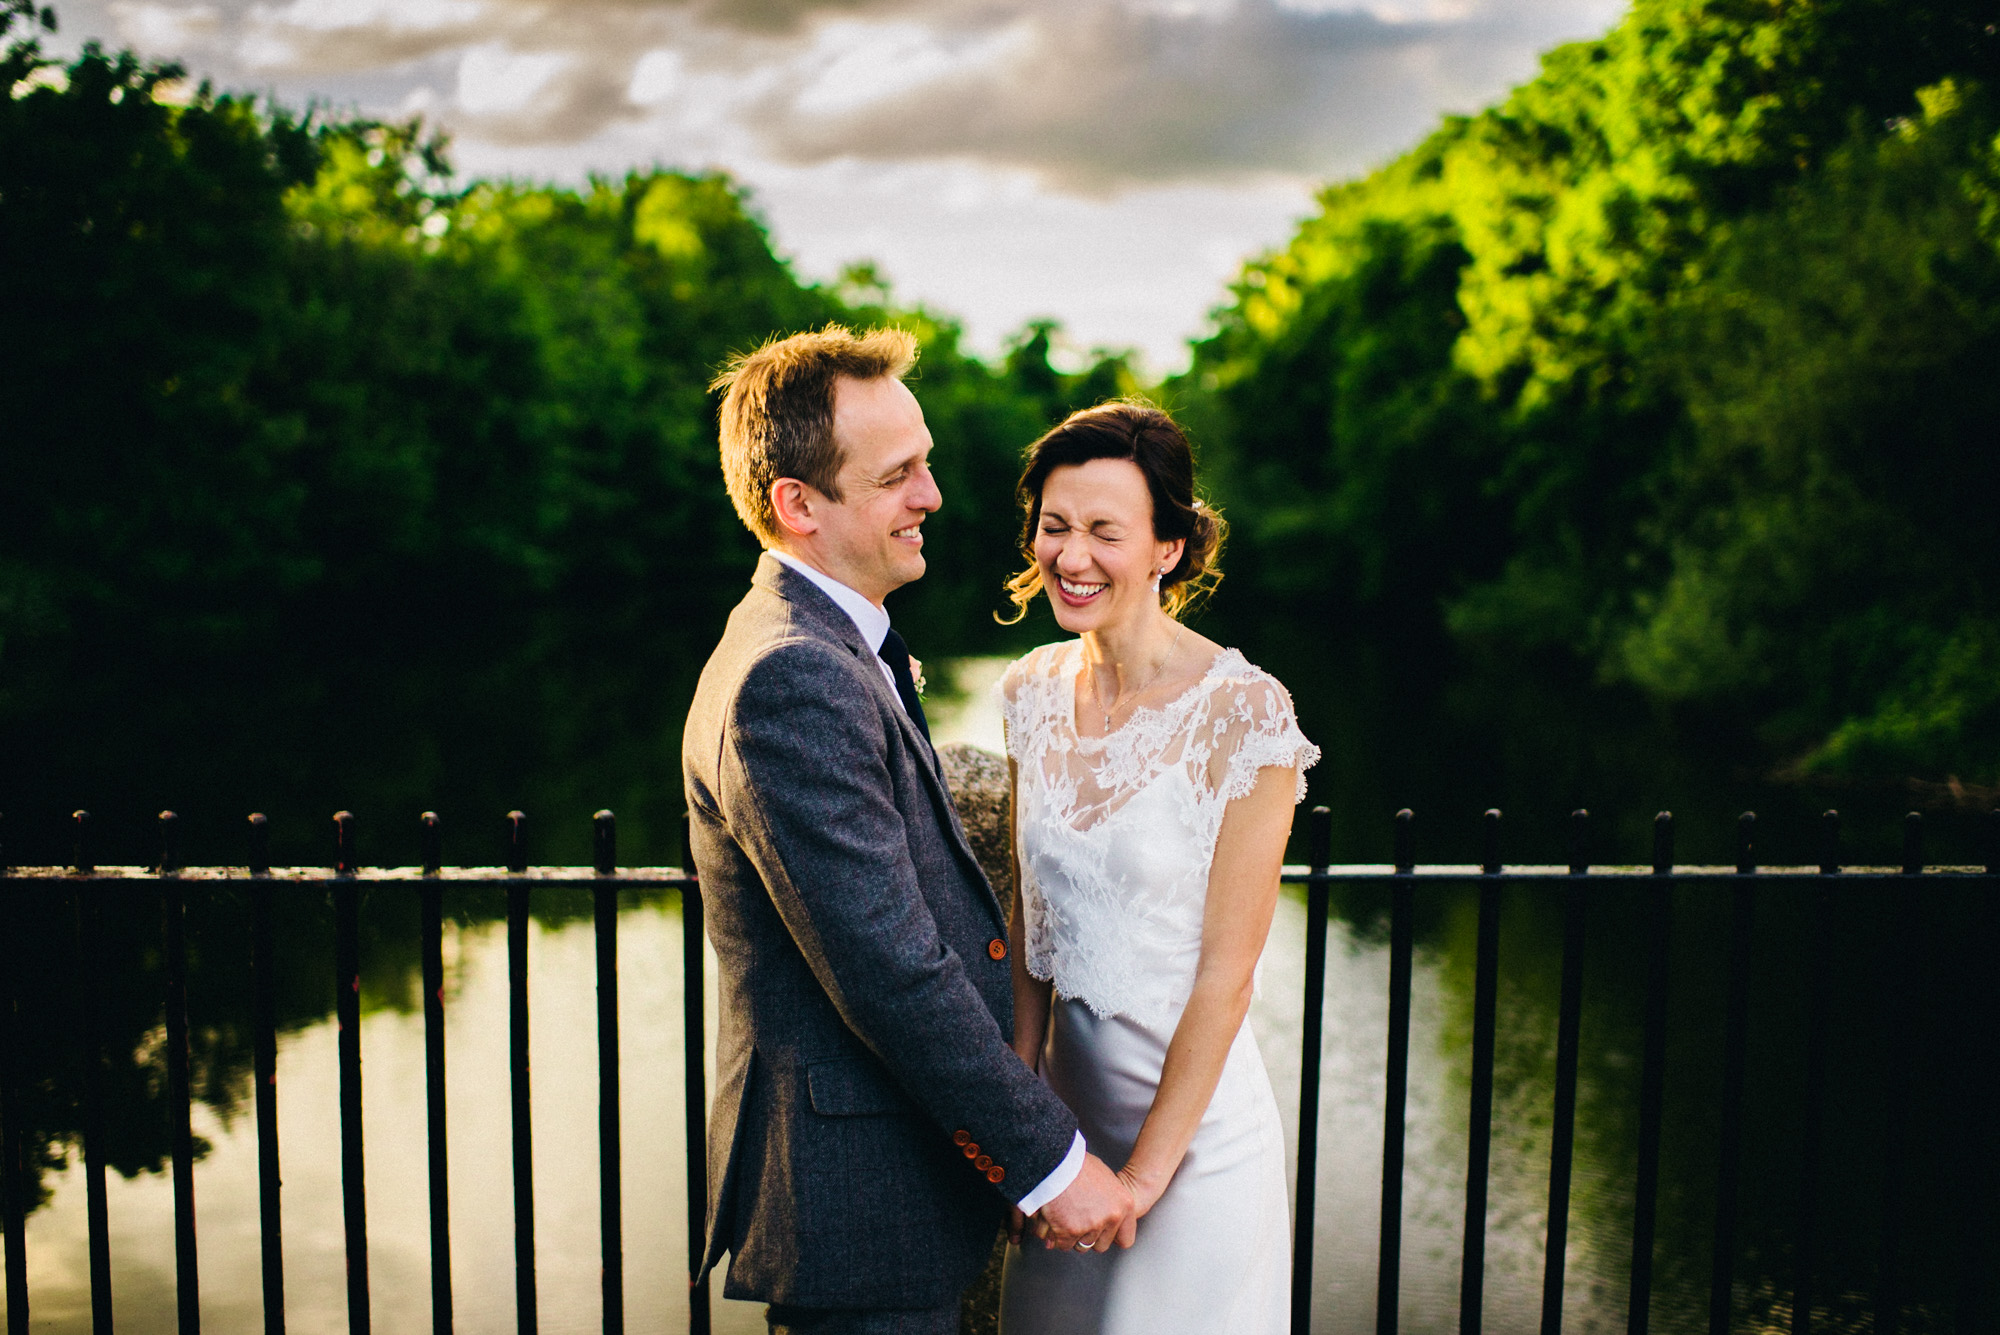 Derbyshire wedding photography at West Mill - Nadia and Adam